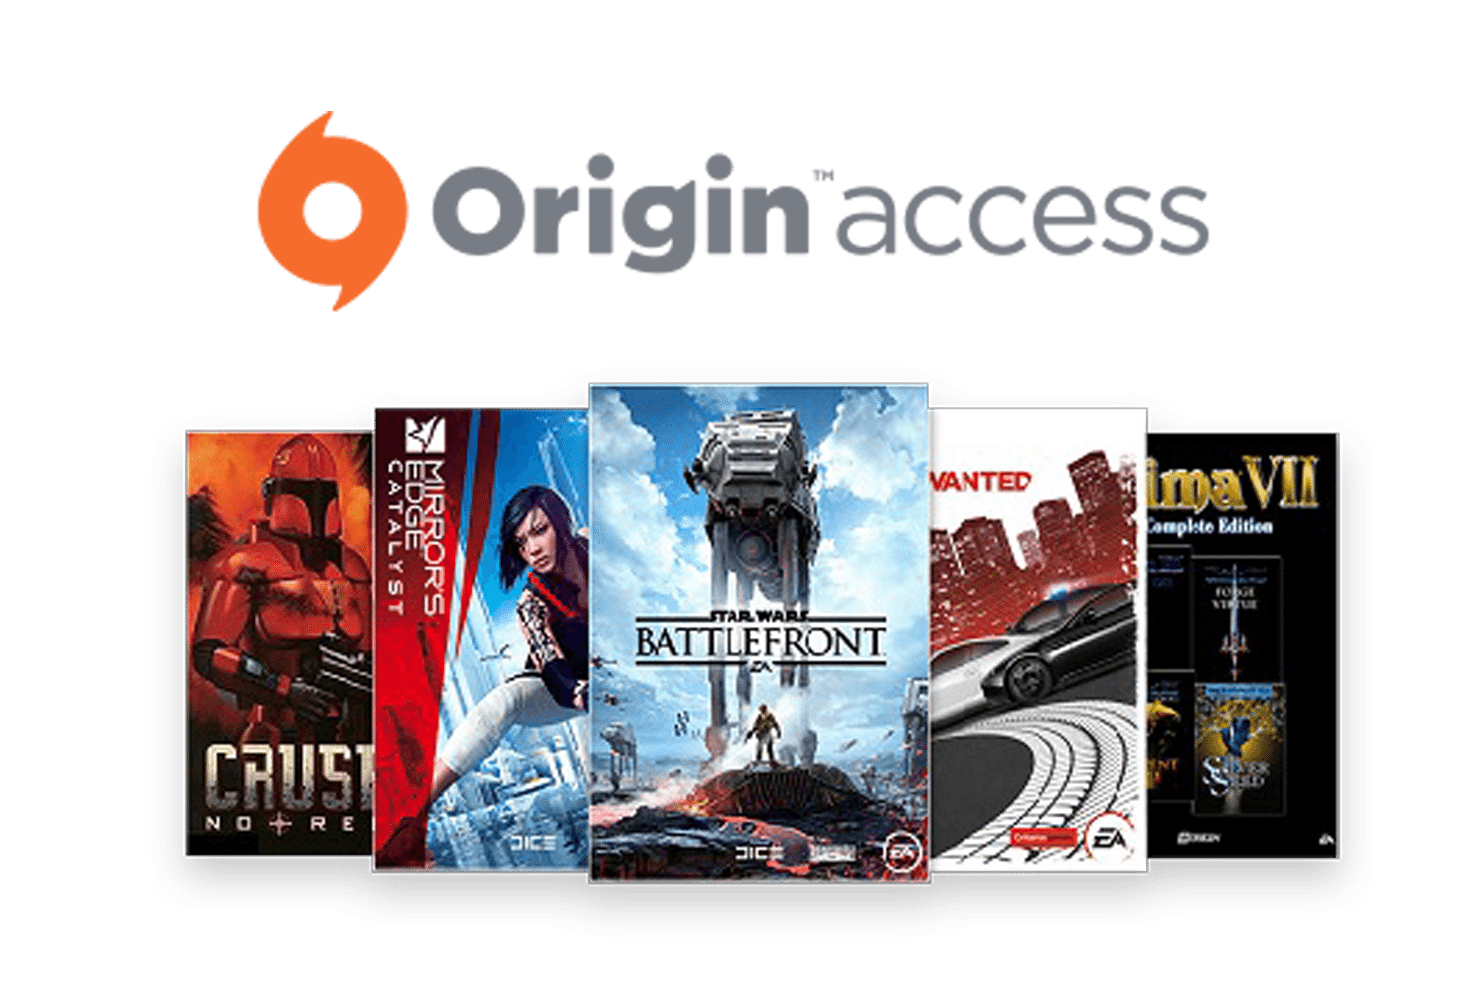 ORIGIN Access Expands this Year with New Action, Role Playing and Racing Games